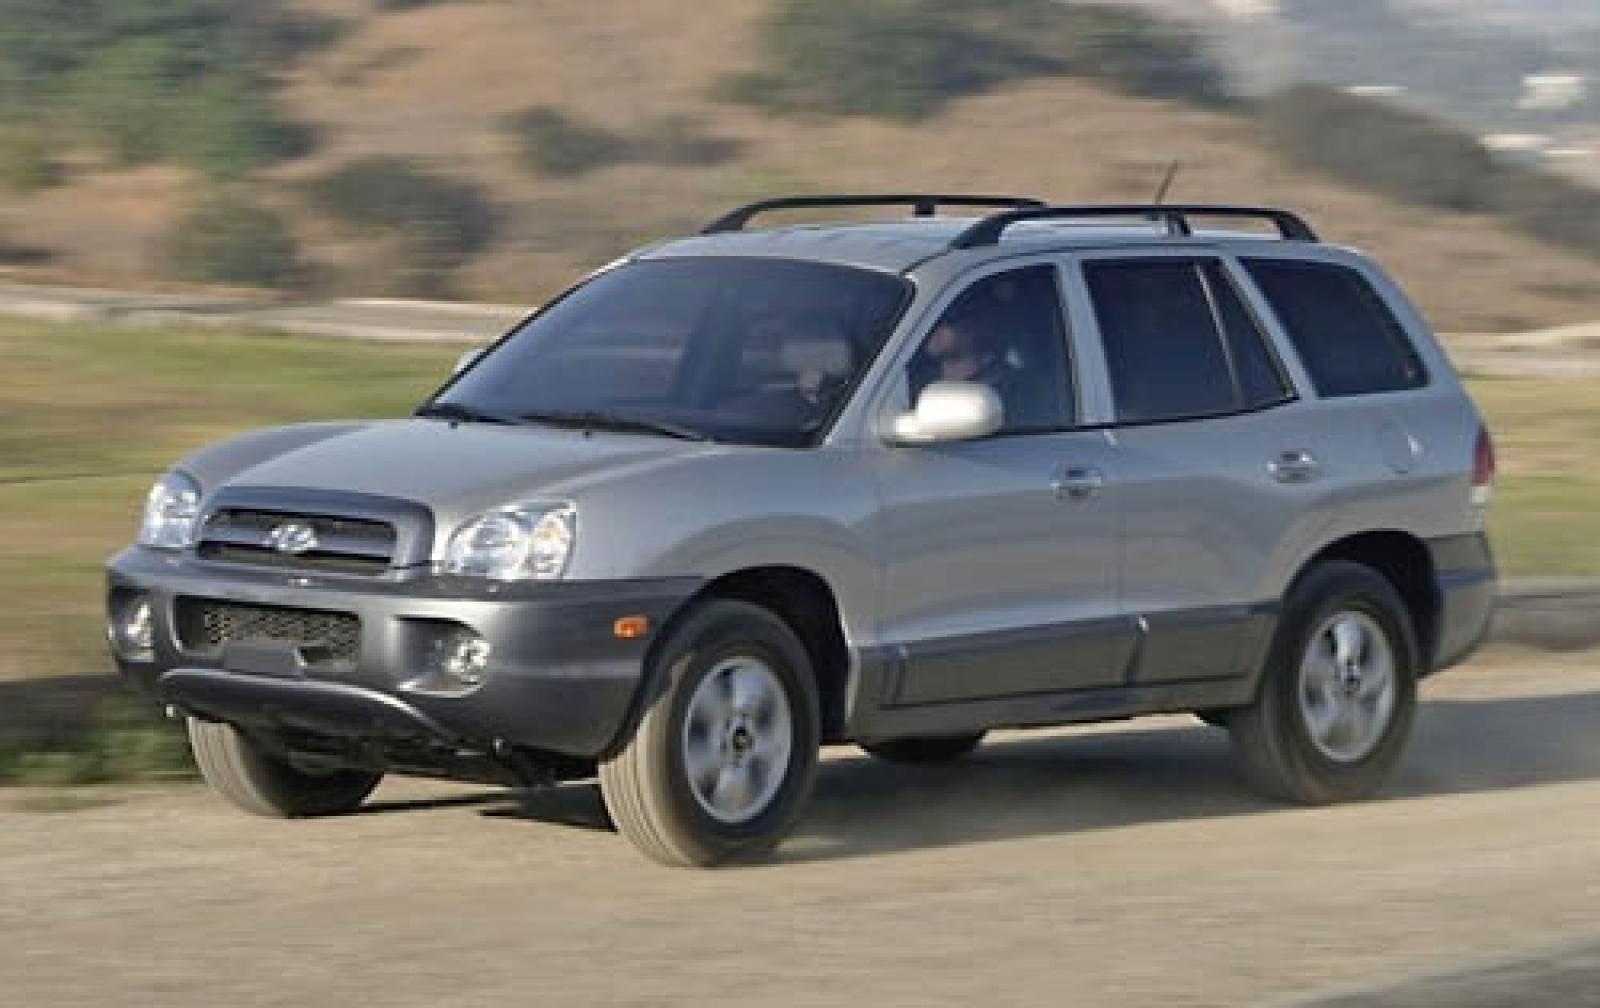 2006 hyundai santa fe information and photos zombiedrive. Black Bedroom Furniture Sets. Home Design Ideas